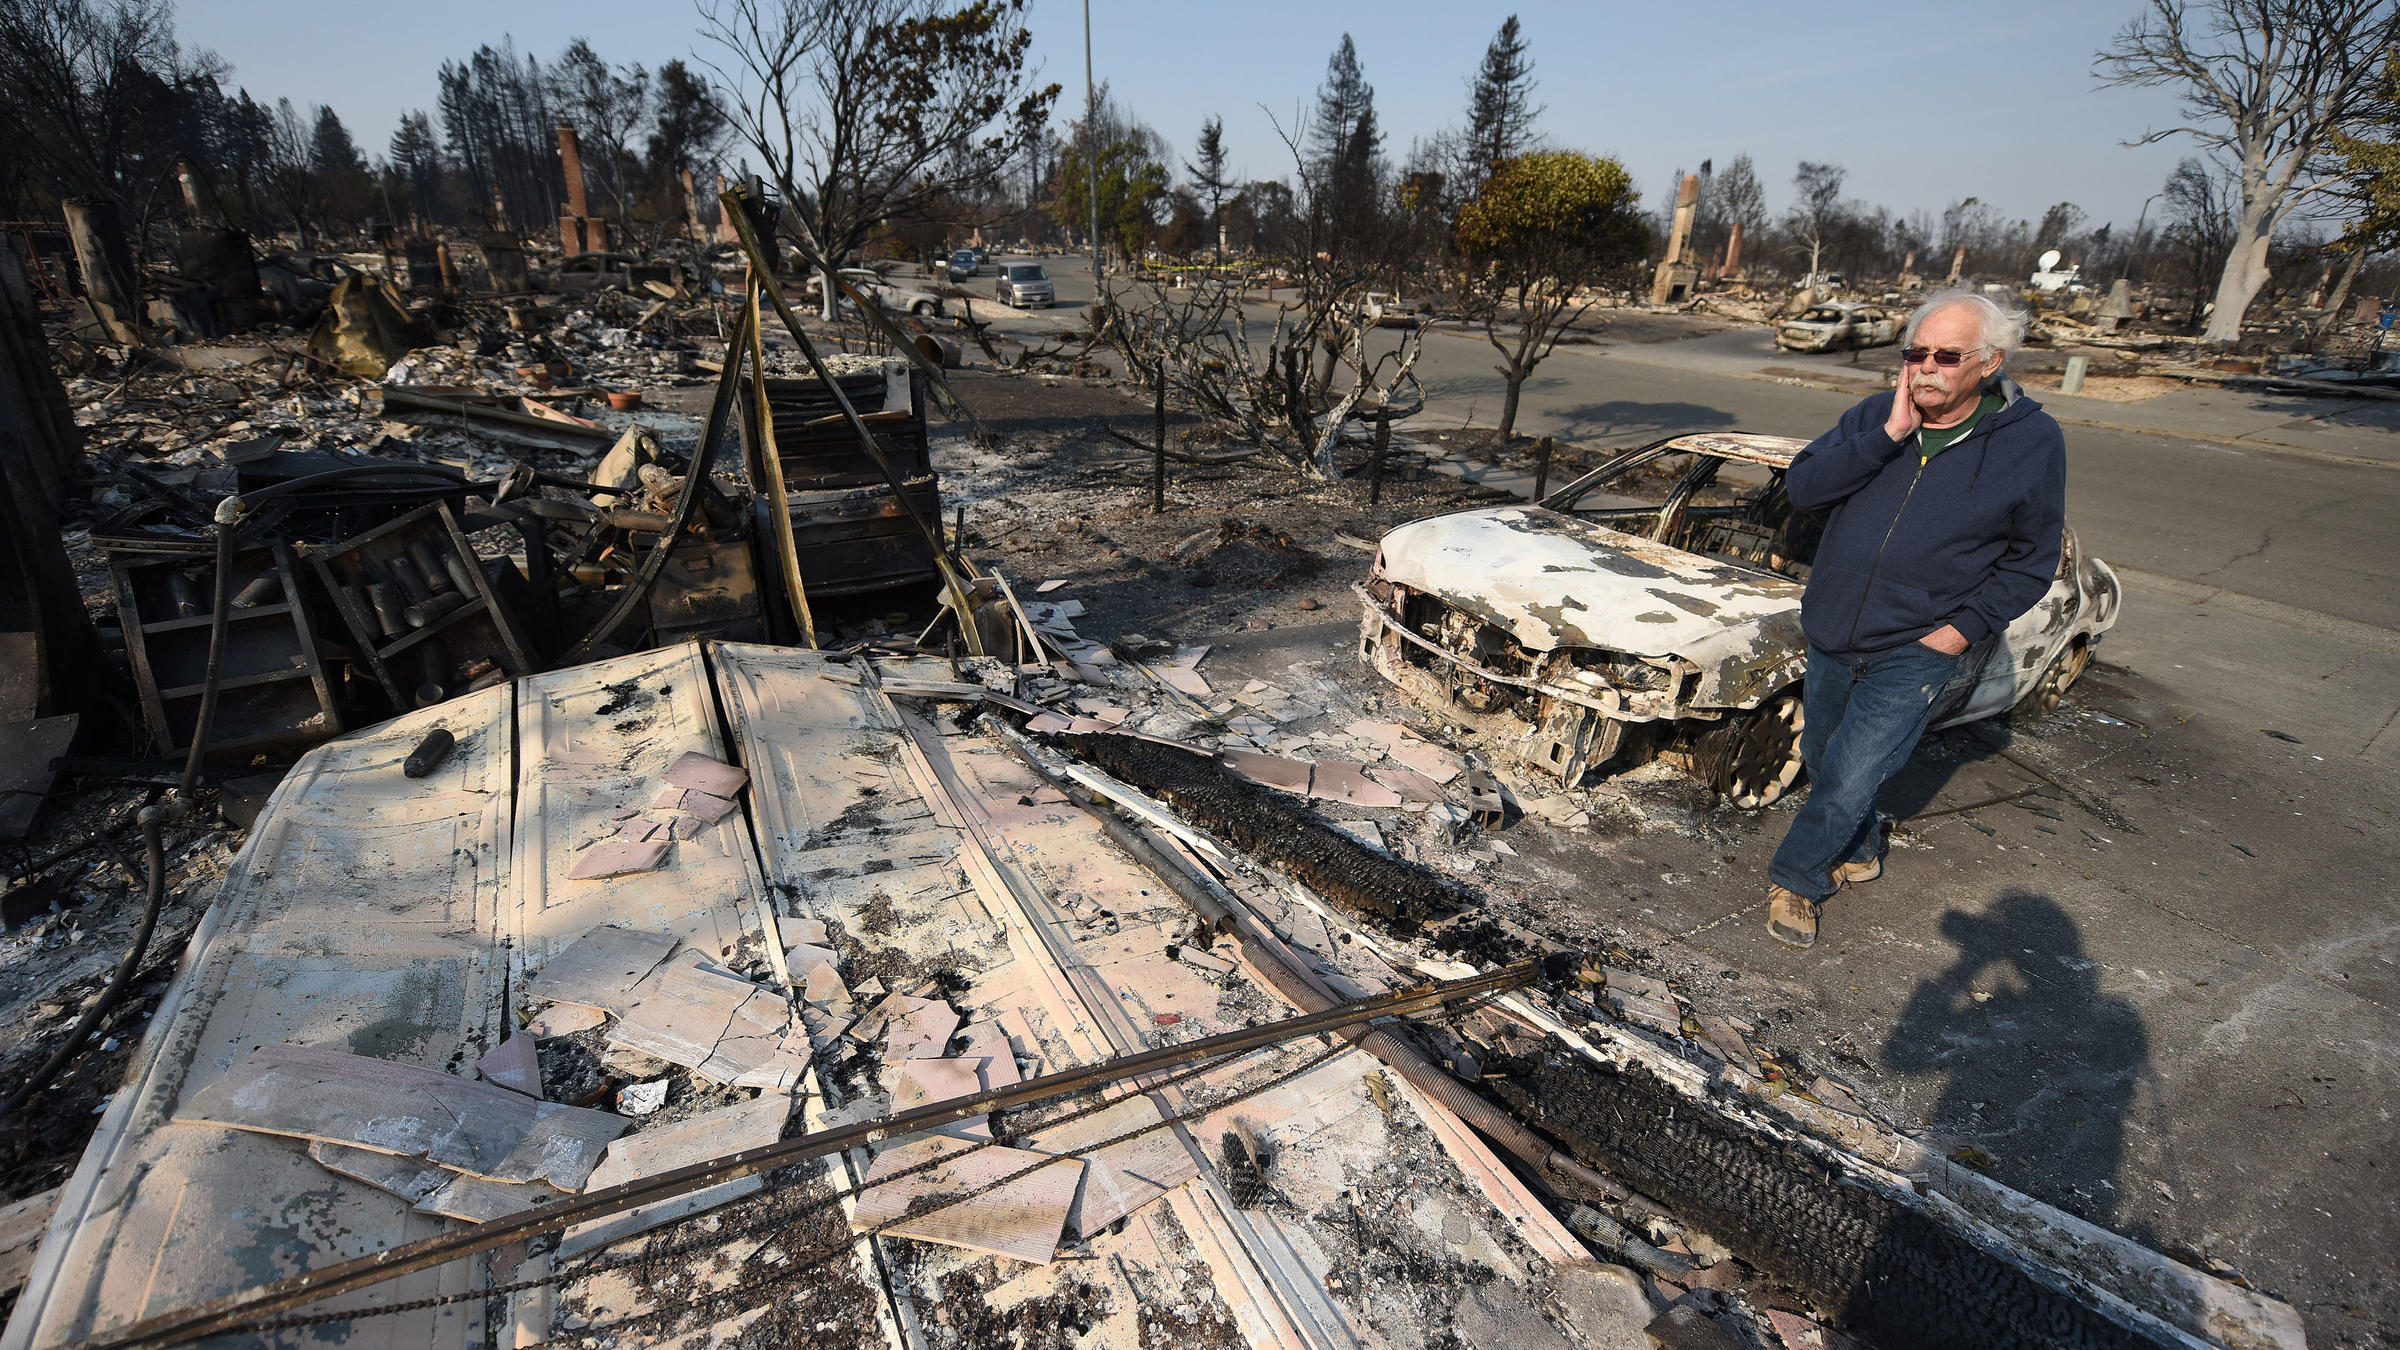 More Flee California Wine Country As Deadly Wildfires Spread